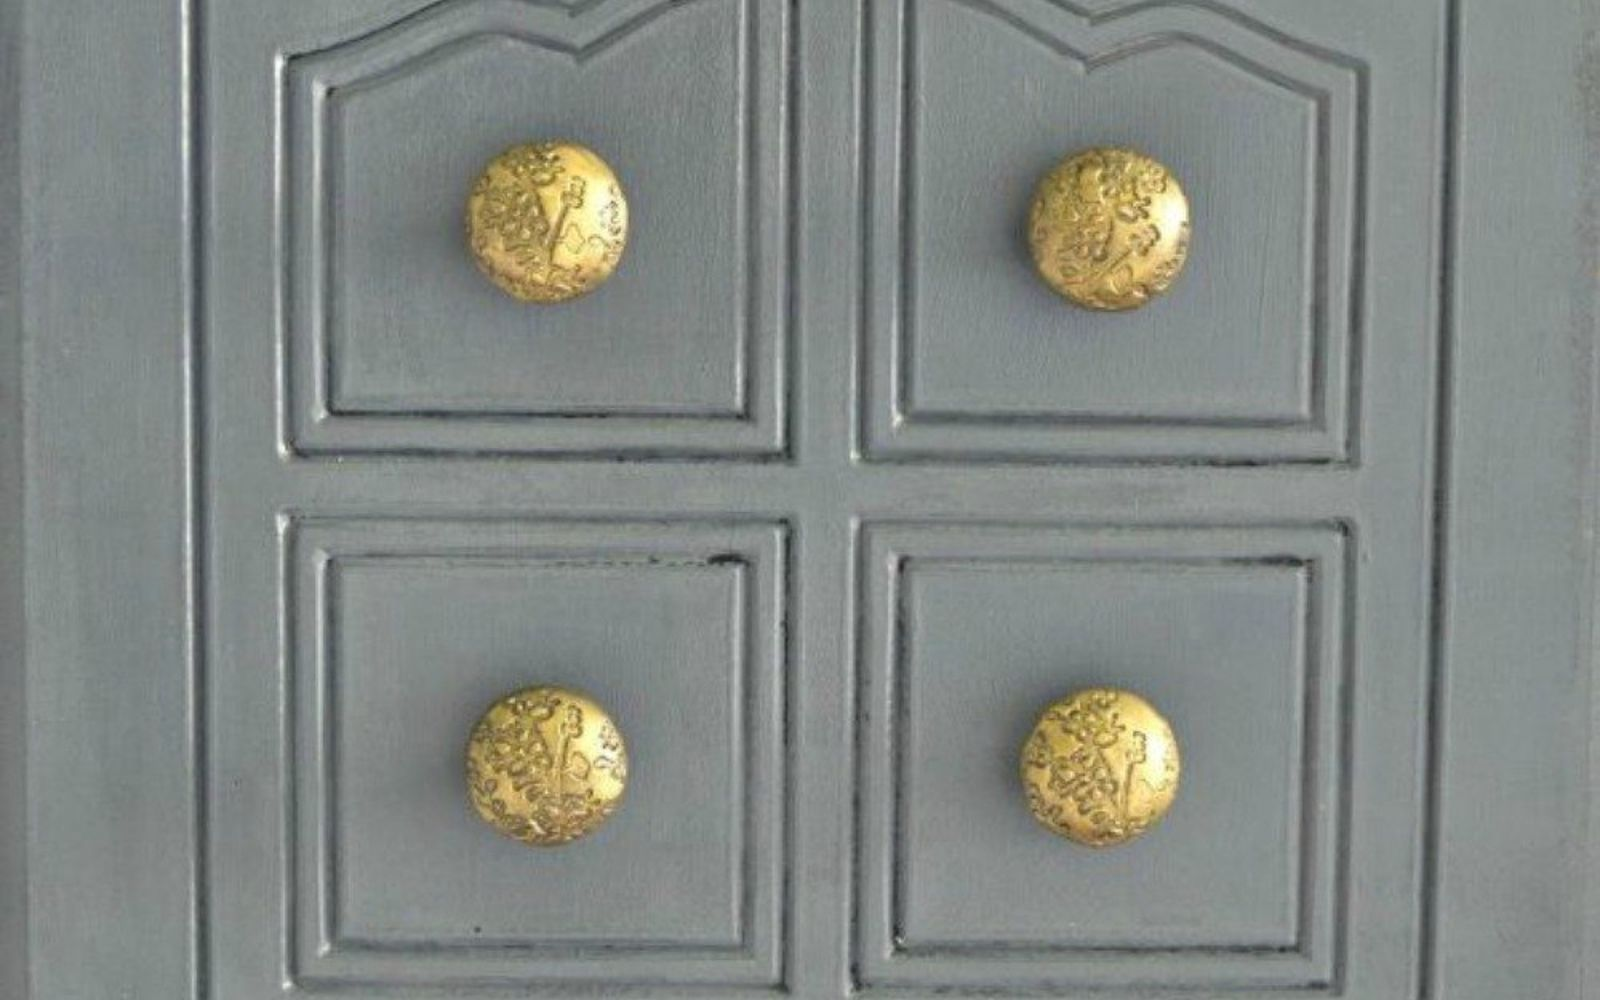 s upgrade your boring cabinets with these 11 knob ideas, kitchen cabinets, kitchen design, Mold them into works of art with clay